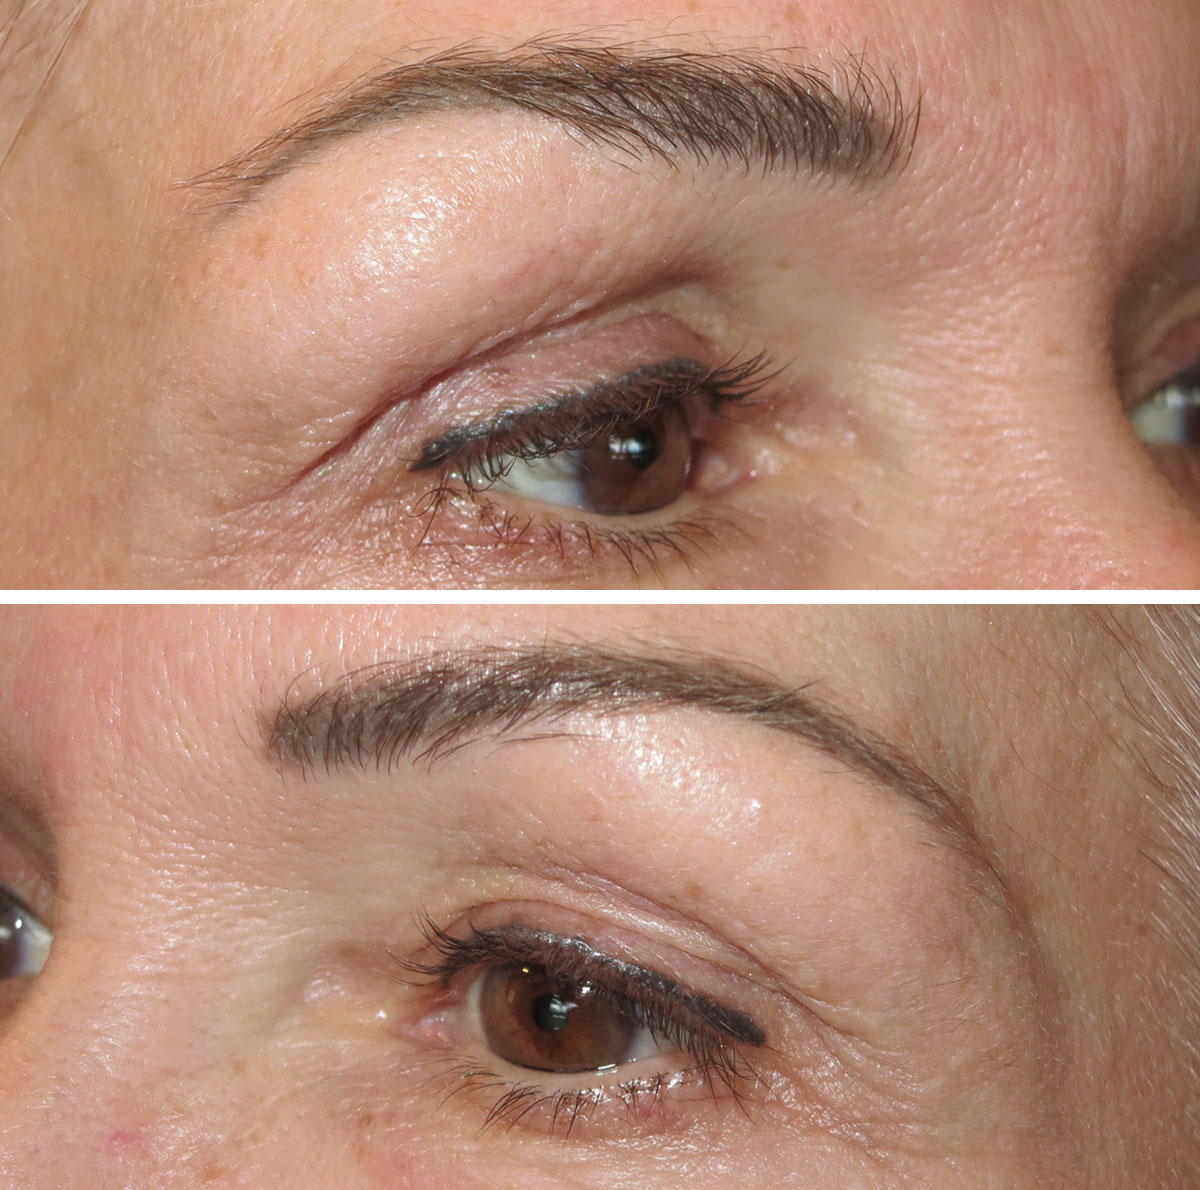 Powder fill and upper liner 30 days healed before follow up service